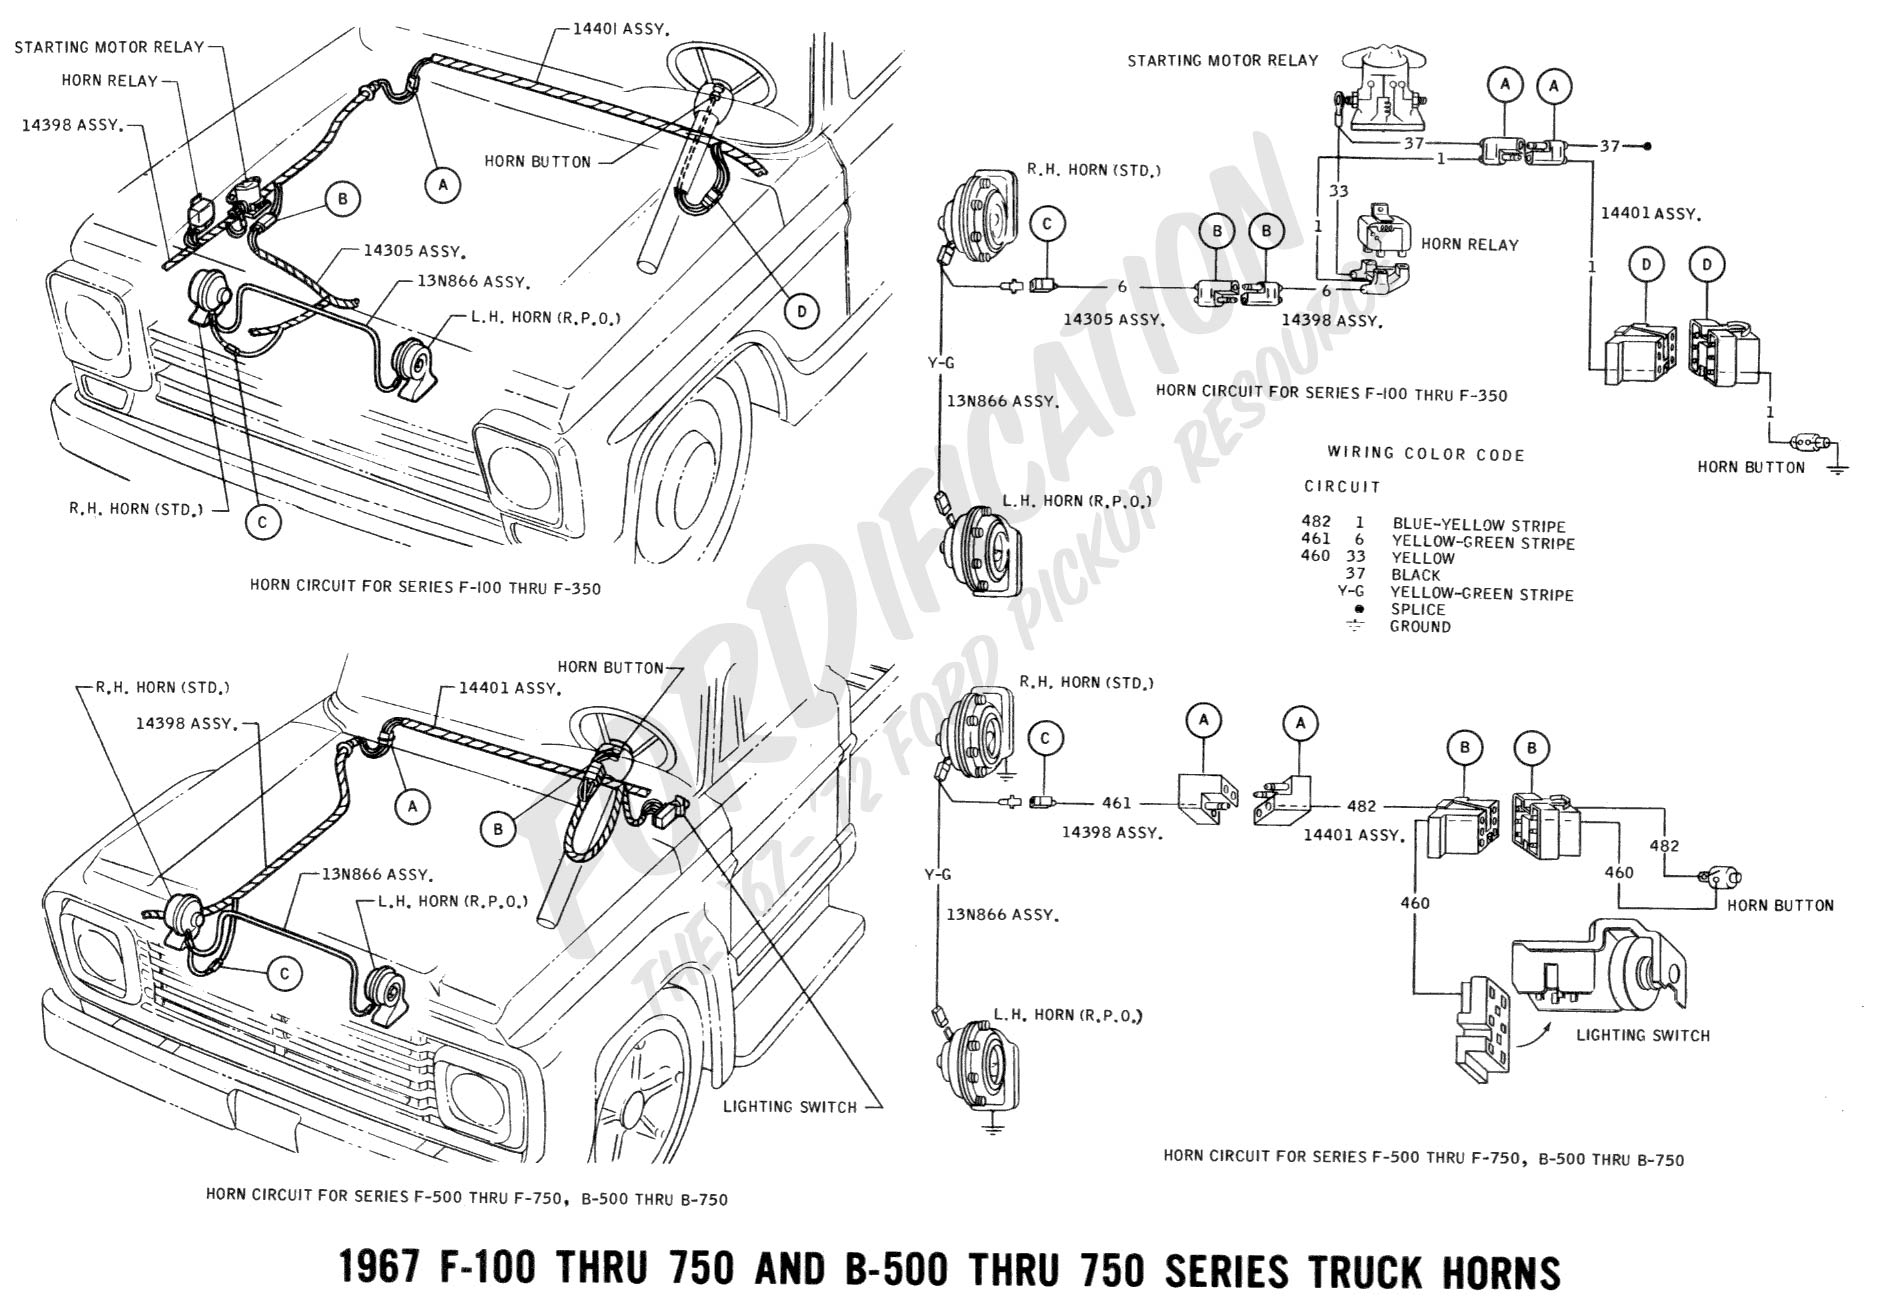 1966 Ford Truck Wiring Diagram - All Diagram Schematics Fan Wiring Diagram For F on